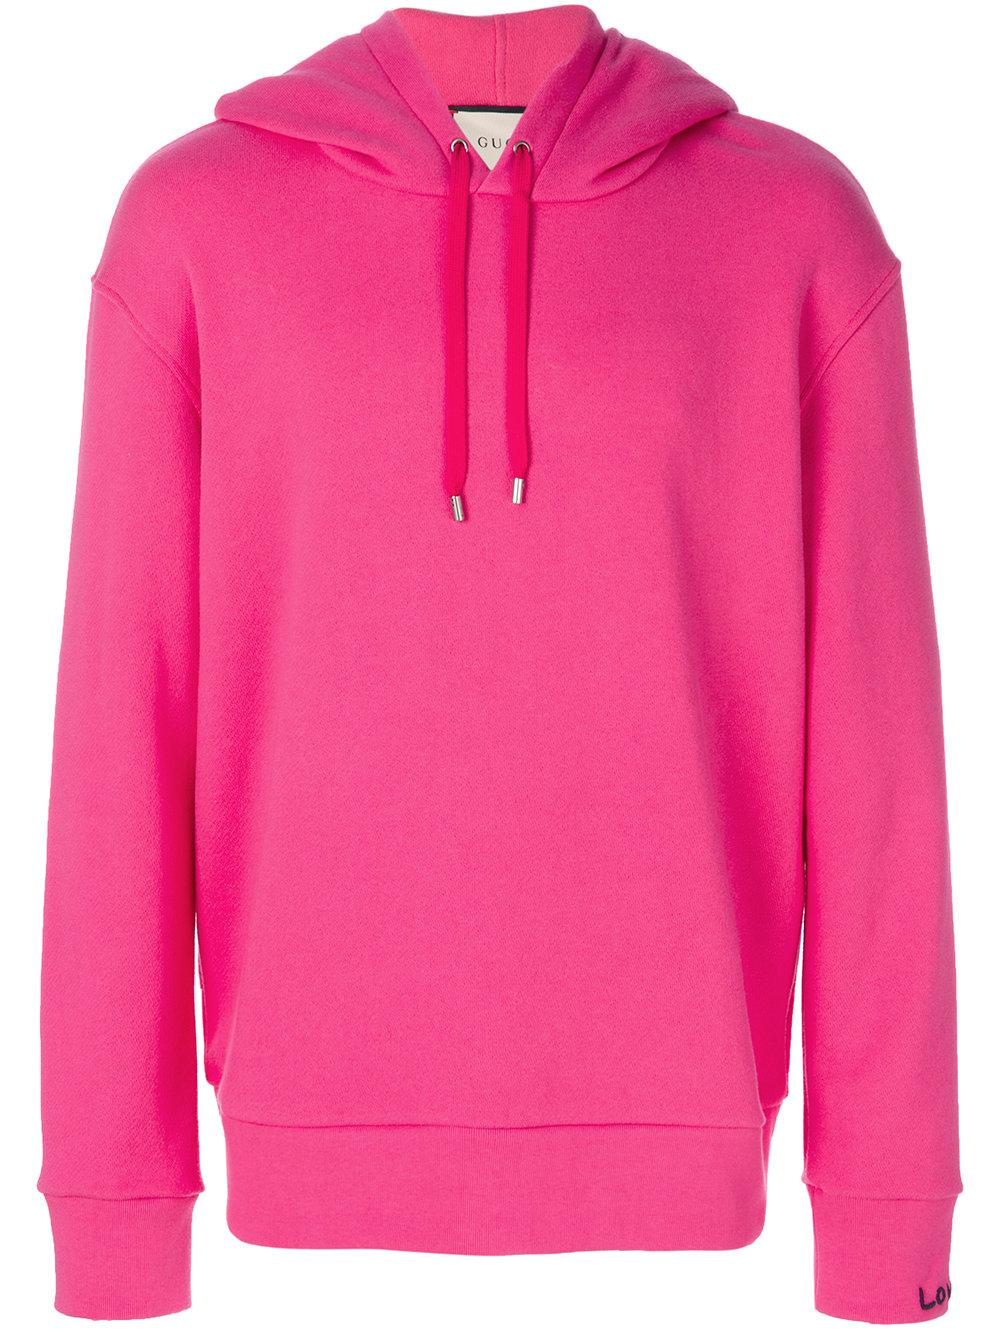 Lyst - Gucci Sweatshirt With Appliqué in Pink for Men